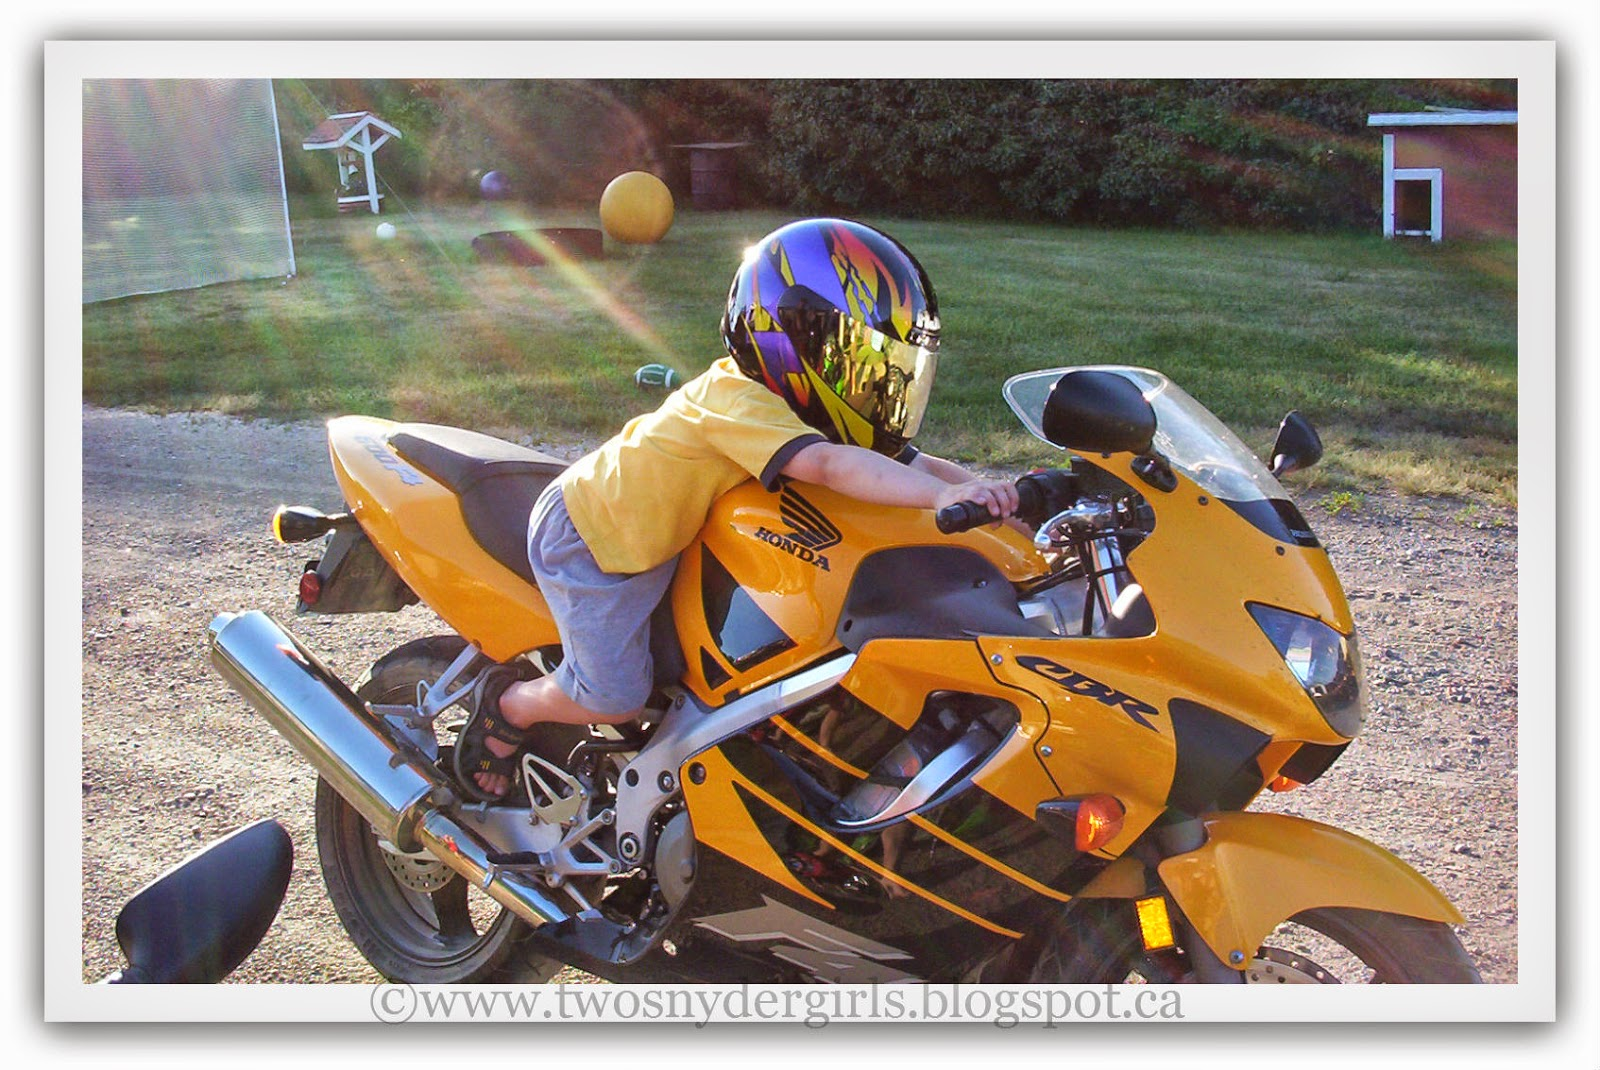 Child pretending to ride a motorcycle